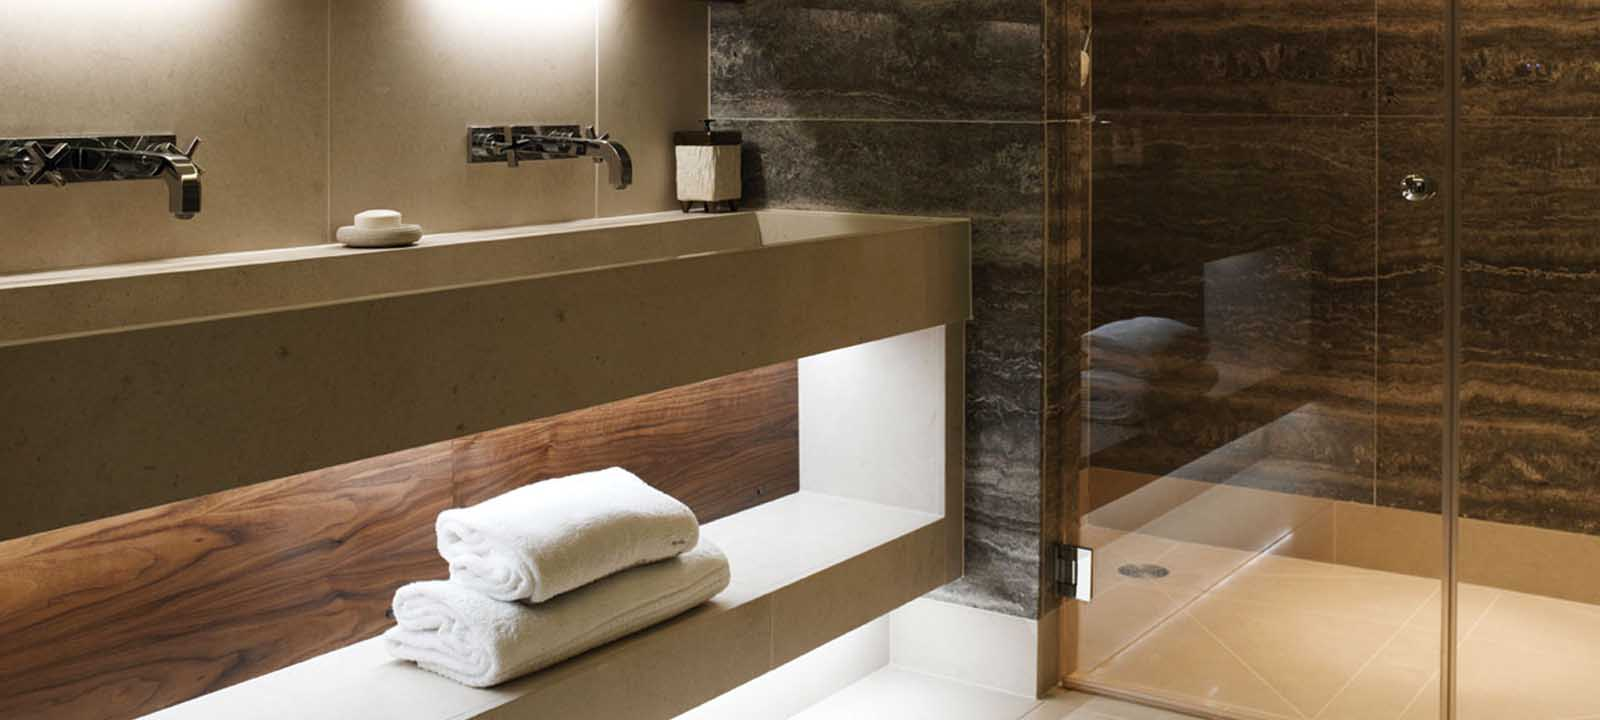 Wall Tile Ideas For Bathroom